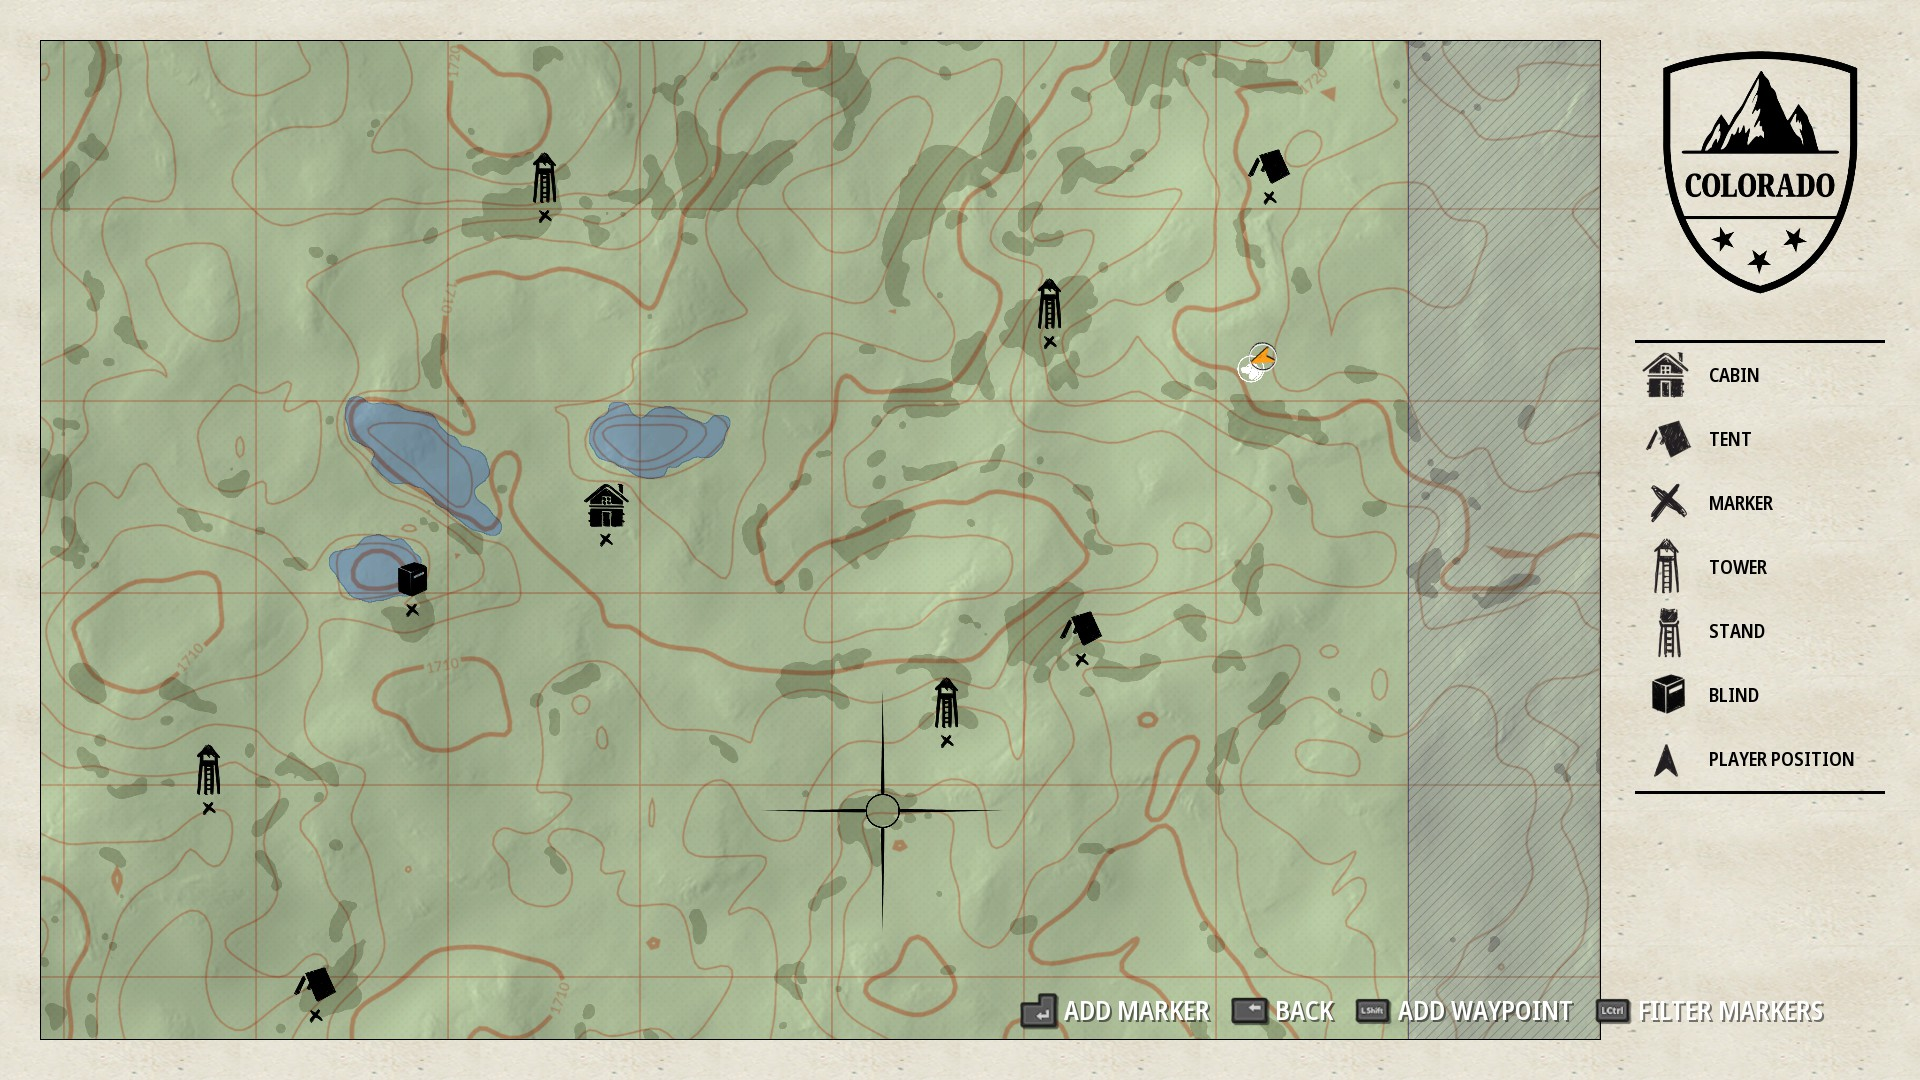 The in-game map will become populated with the camp sites, blinds, and stands you encounter while exploring.